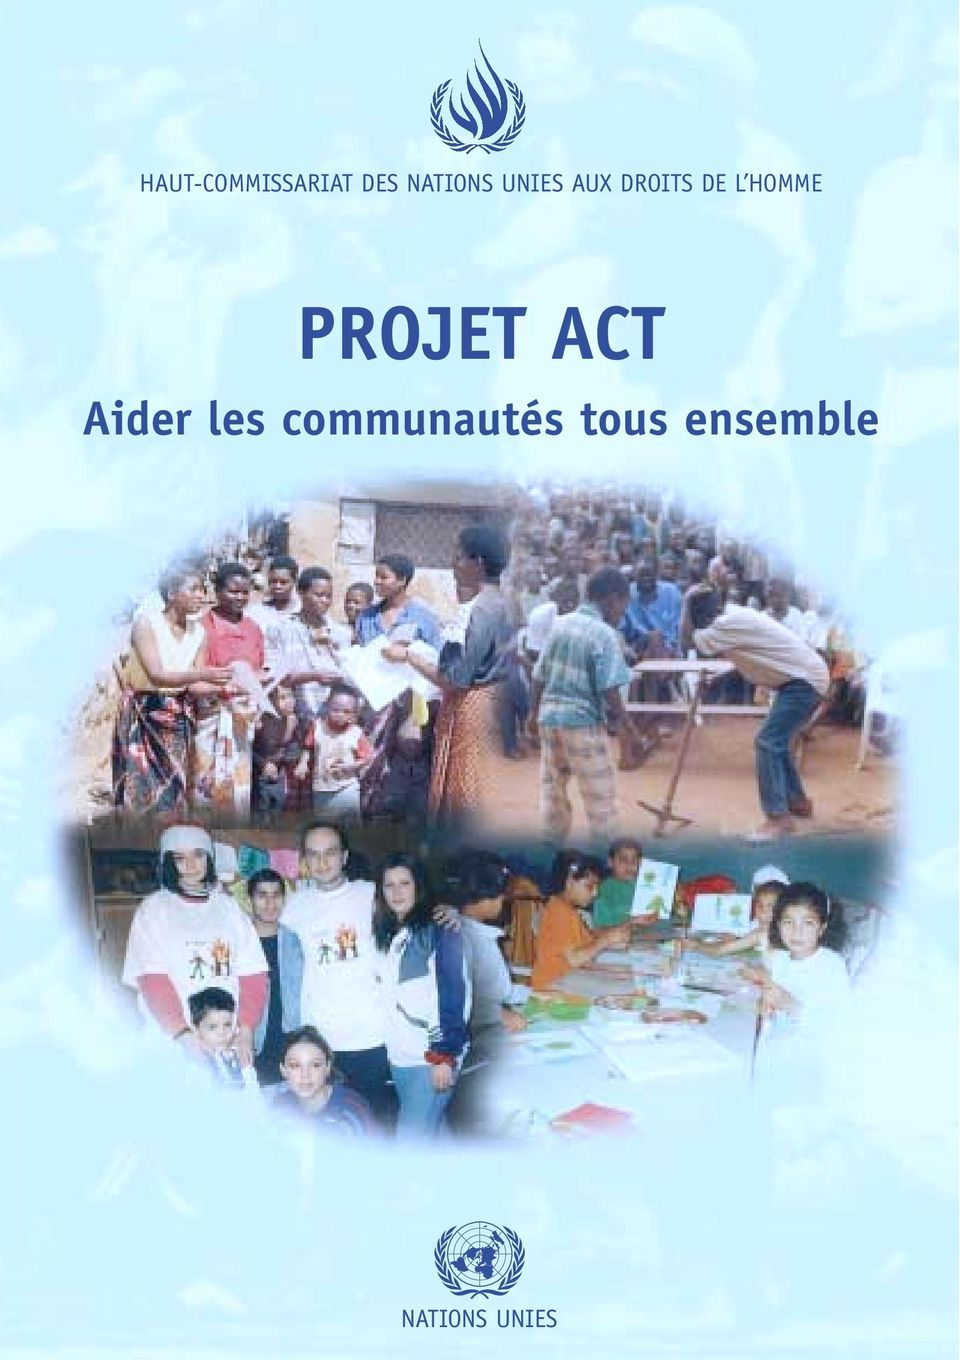 PROJET ACT Aider les